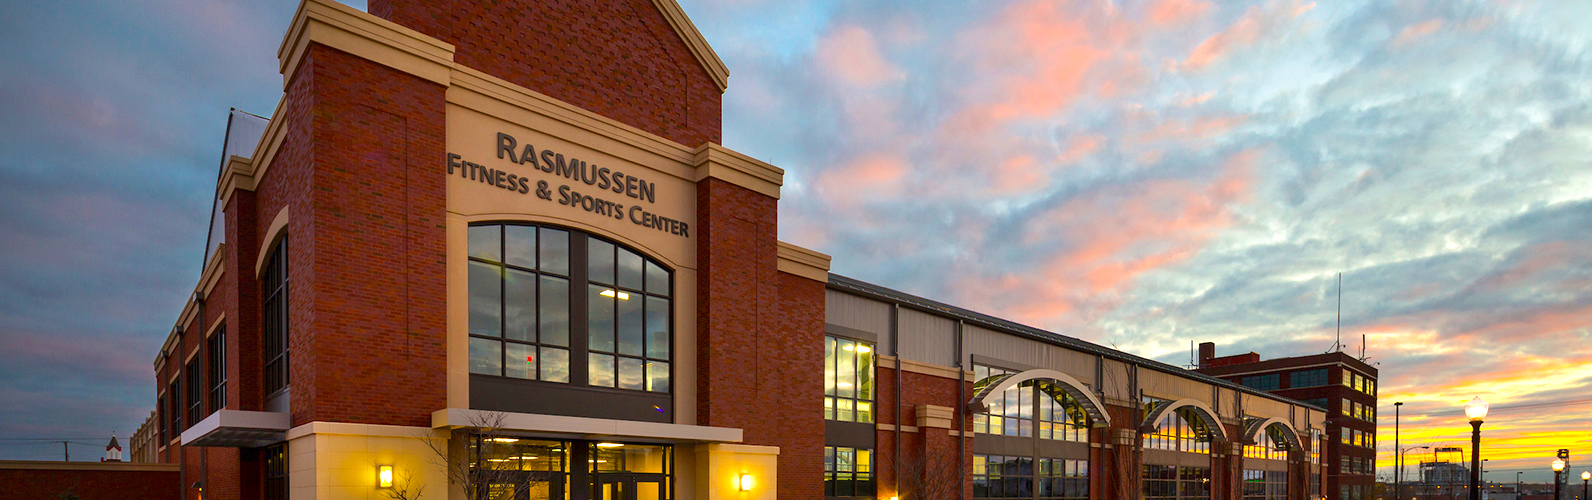 Rasmussen Center